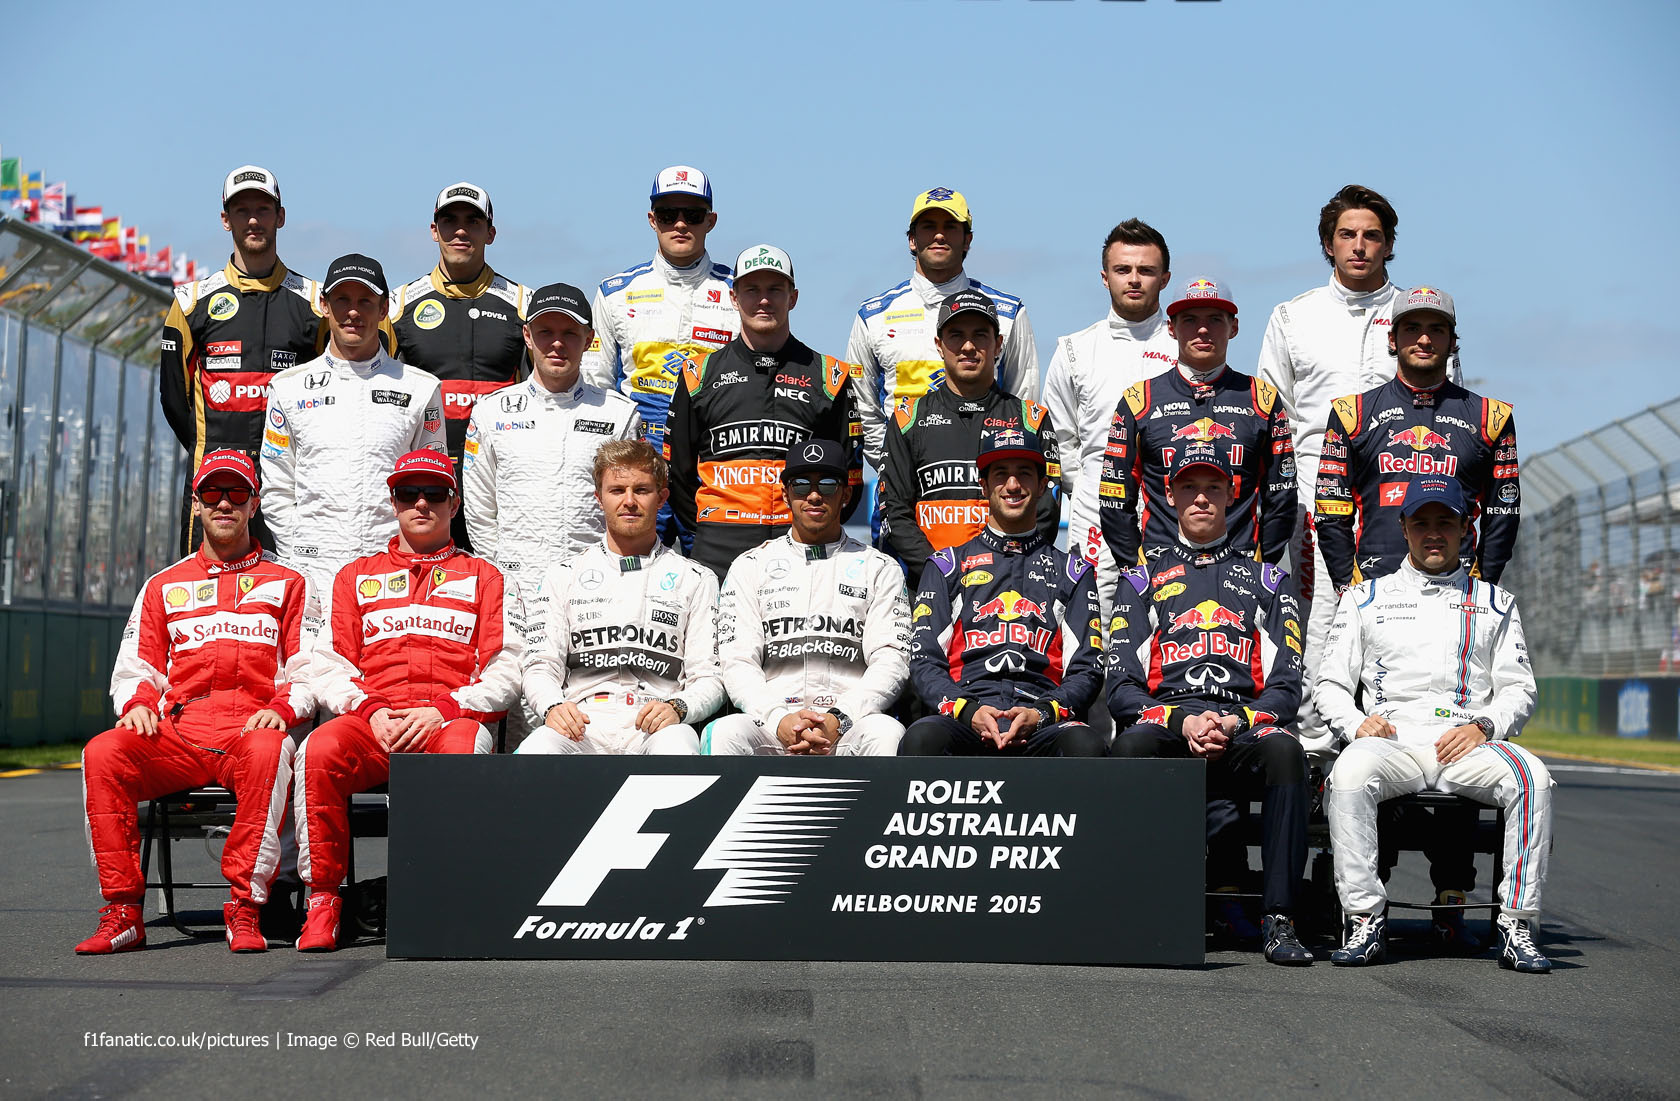 http://superf1.be/spip/IMG/jpg/drivers-2-3.jpg